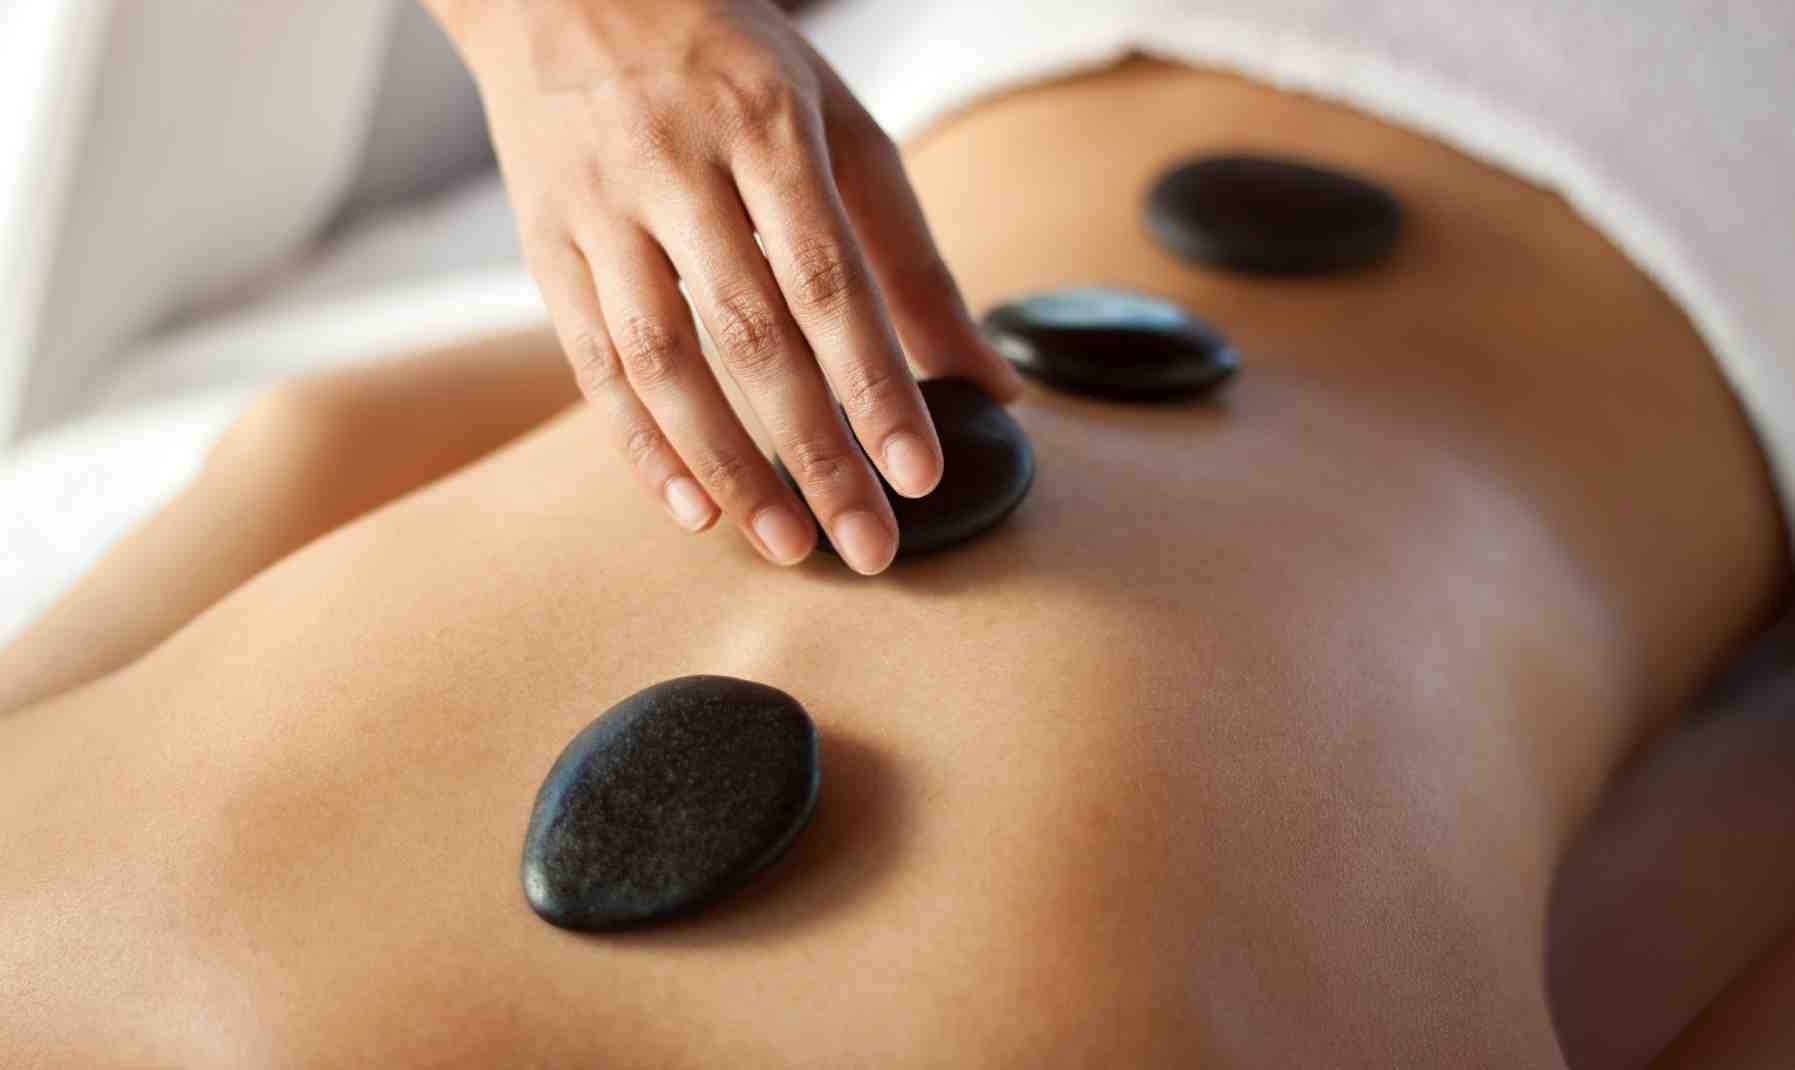 Hot body massage images